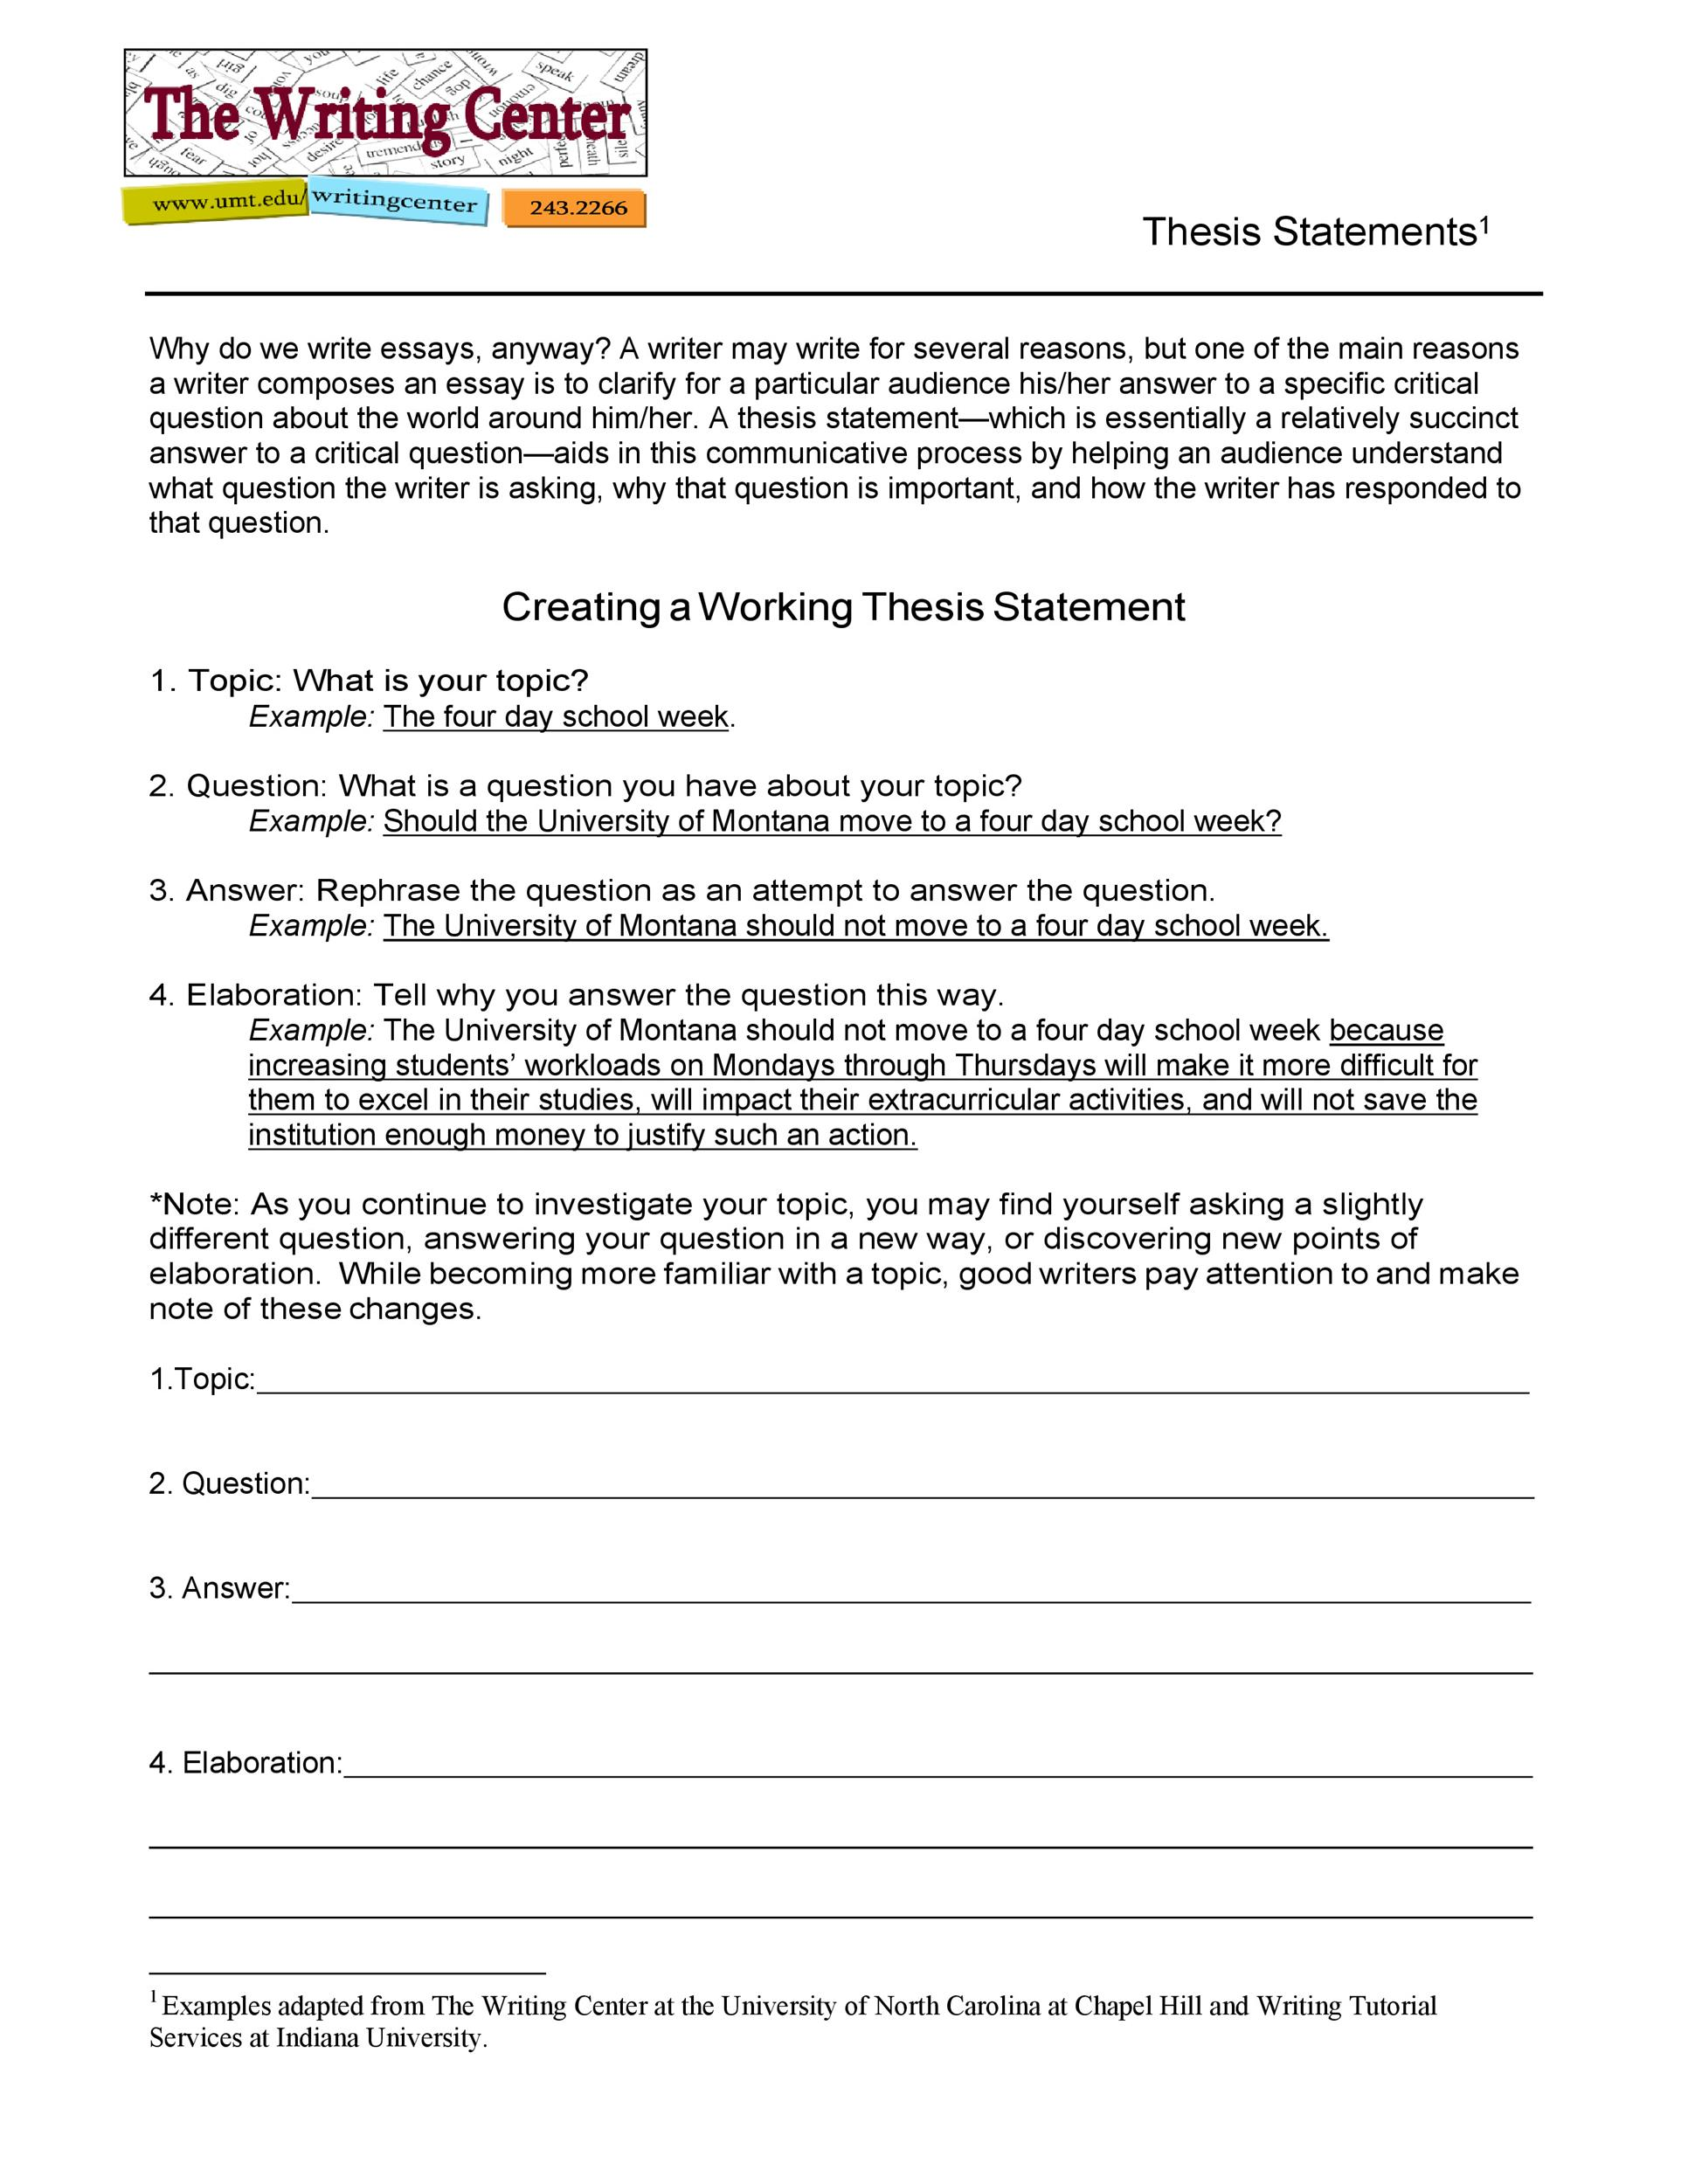 Free thesis statement template 26